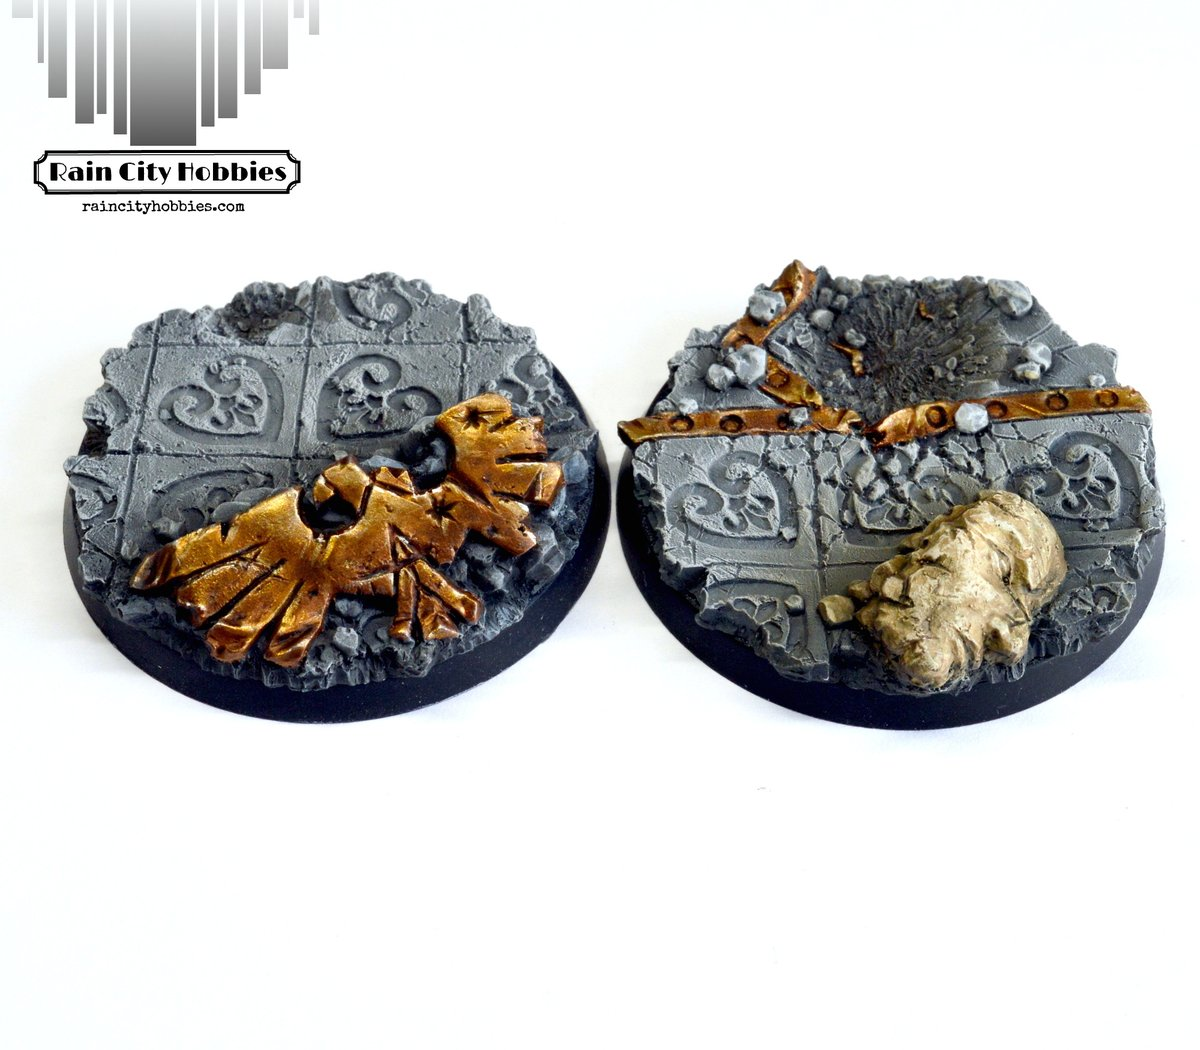 Just showing off a few more bases I sculpted and painted for https://t.co/BgxOoTBYhl You can find them there: https://t.co/Lh9IxFHa3b   #Warhammer #40k #warhammer40k #wh40k  #adeptasororitas #sistersofbattle  #spacemarines https://t.co/sOPJb3dOkT